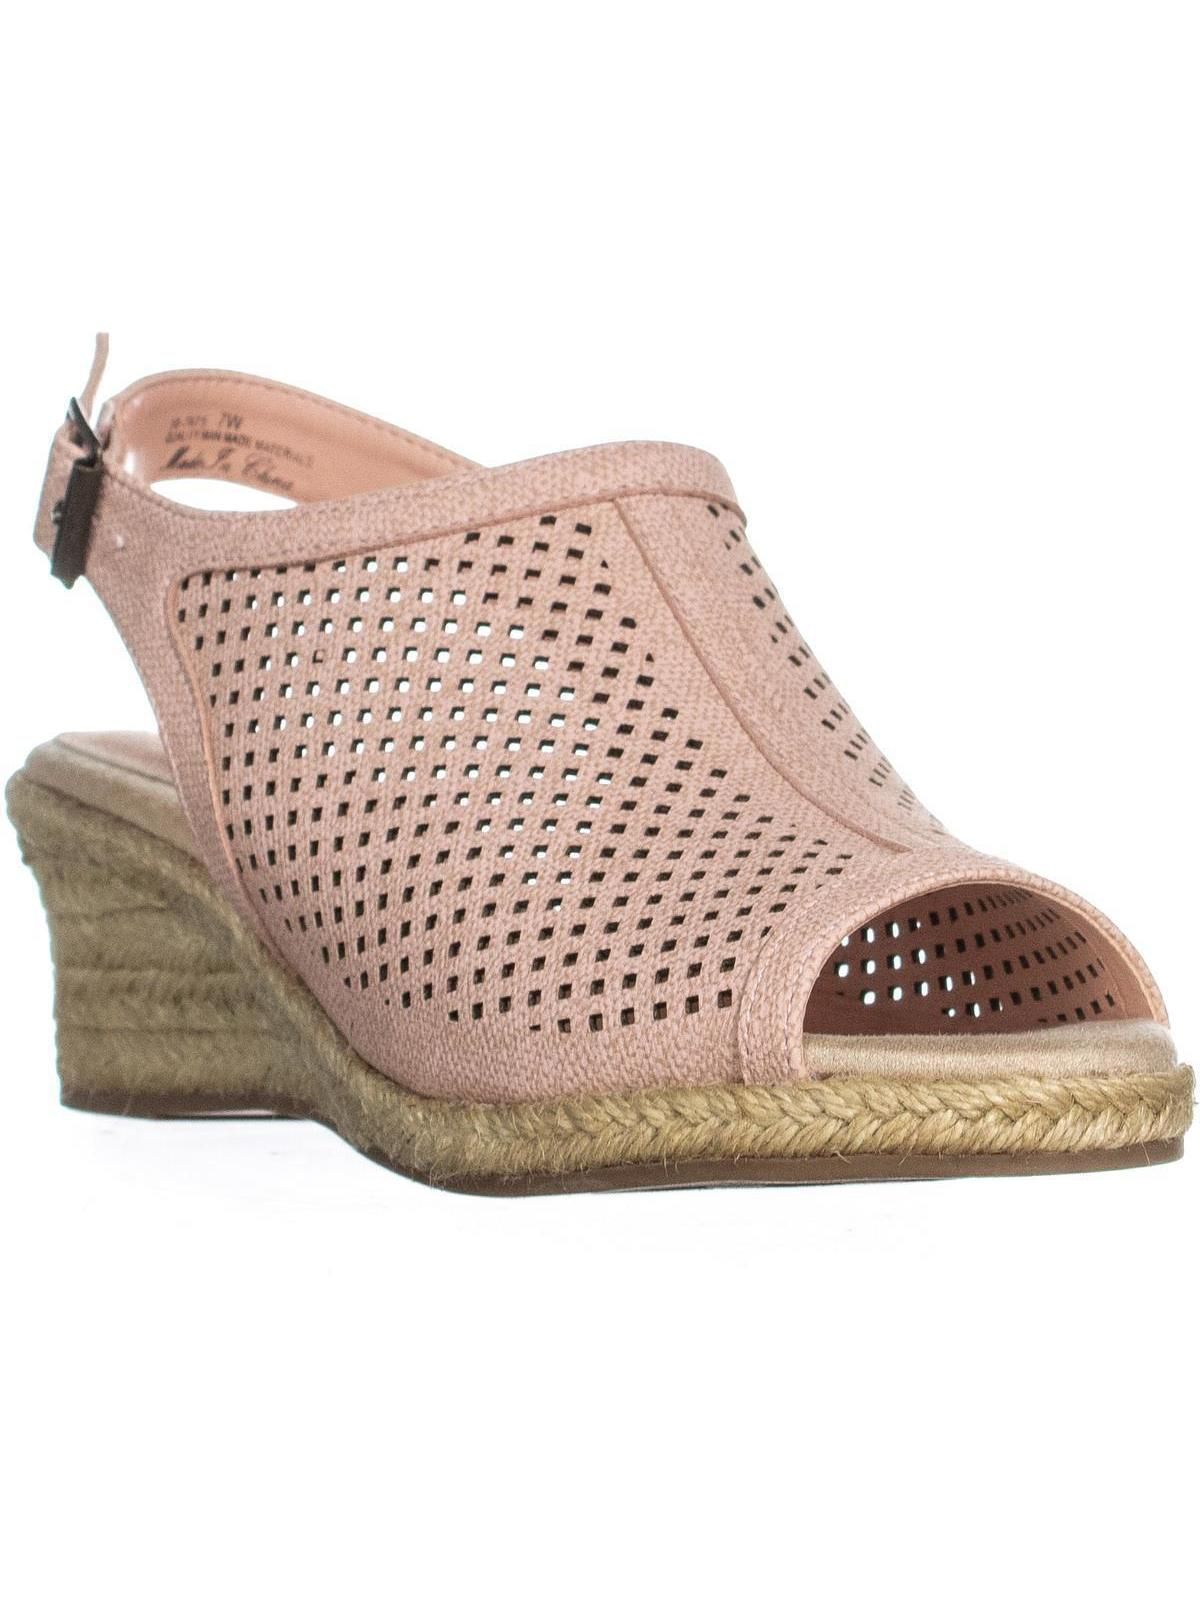 Womens Easy Street Stacy Espadrilles Sandals, Blush, 7 W US